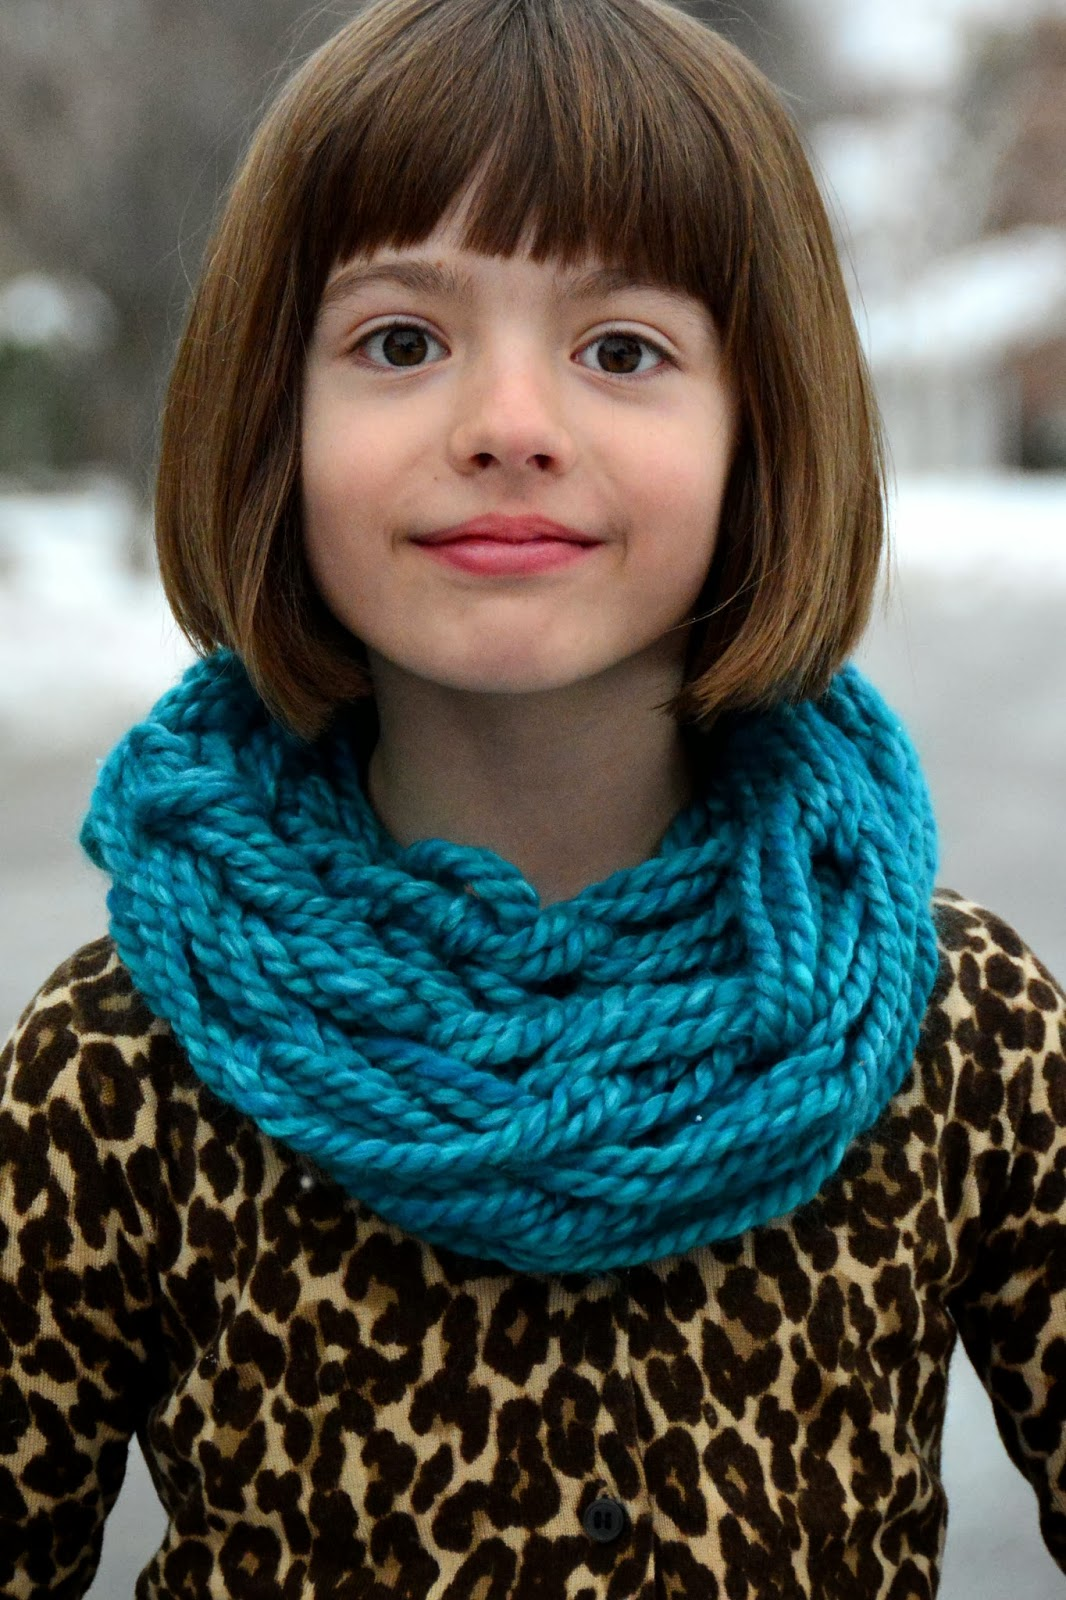 Knitting Pattern Child Cowl : Aesthetic Nest: Knitting: Arm Knit Childs Cowl (Tutorial)